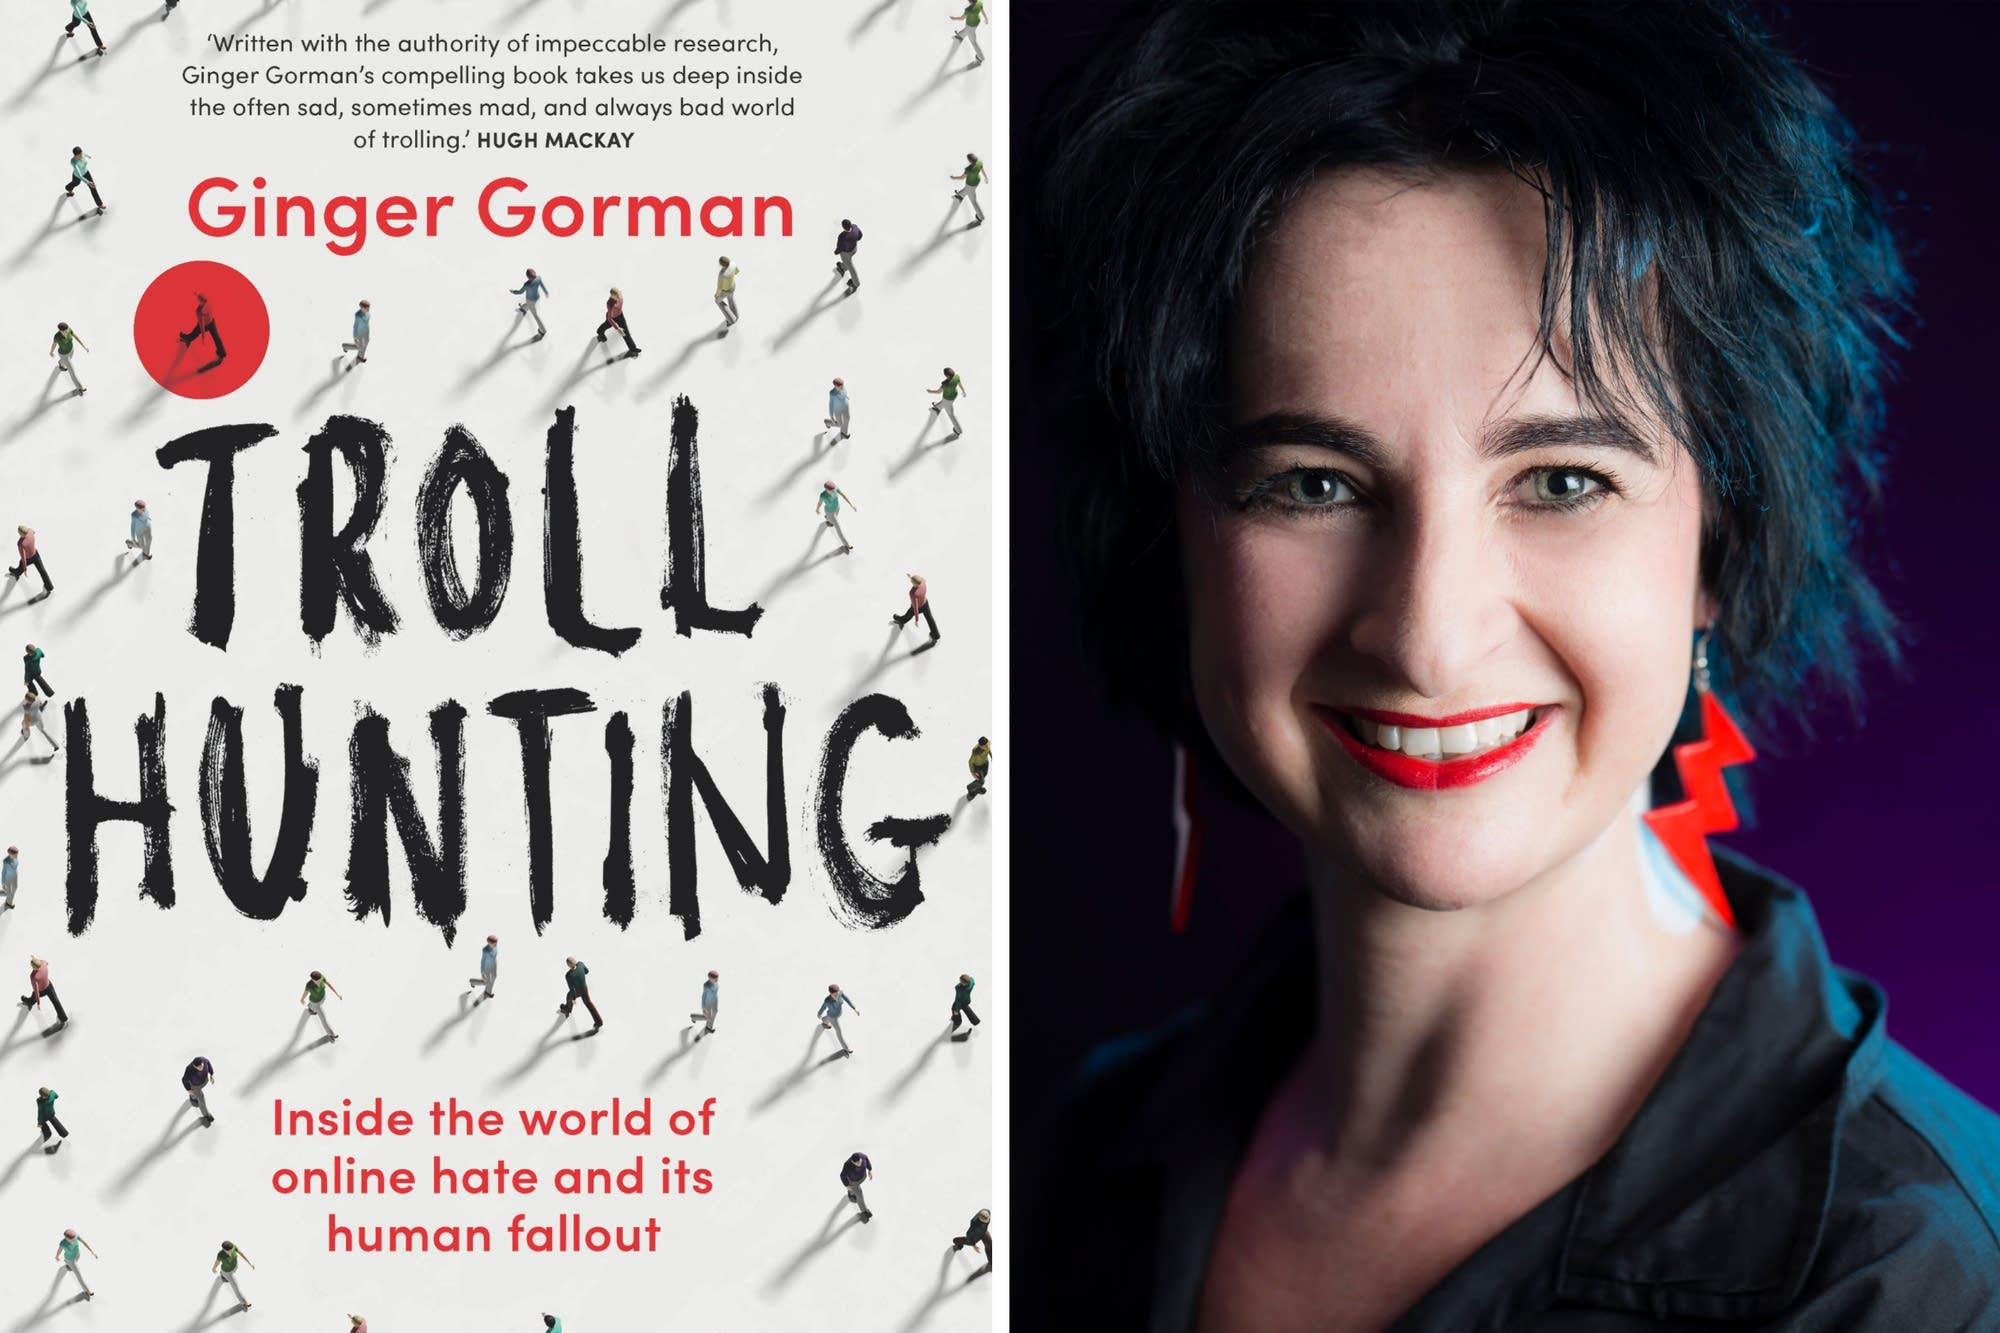 Ginger Gorman, author of 'Troll Hunting'